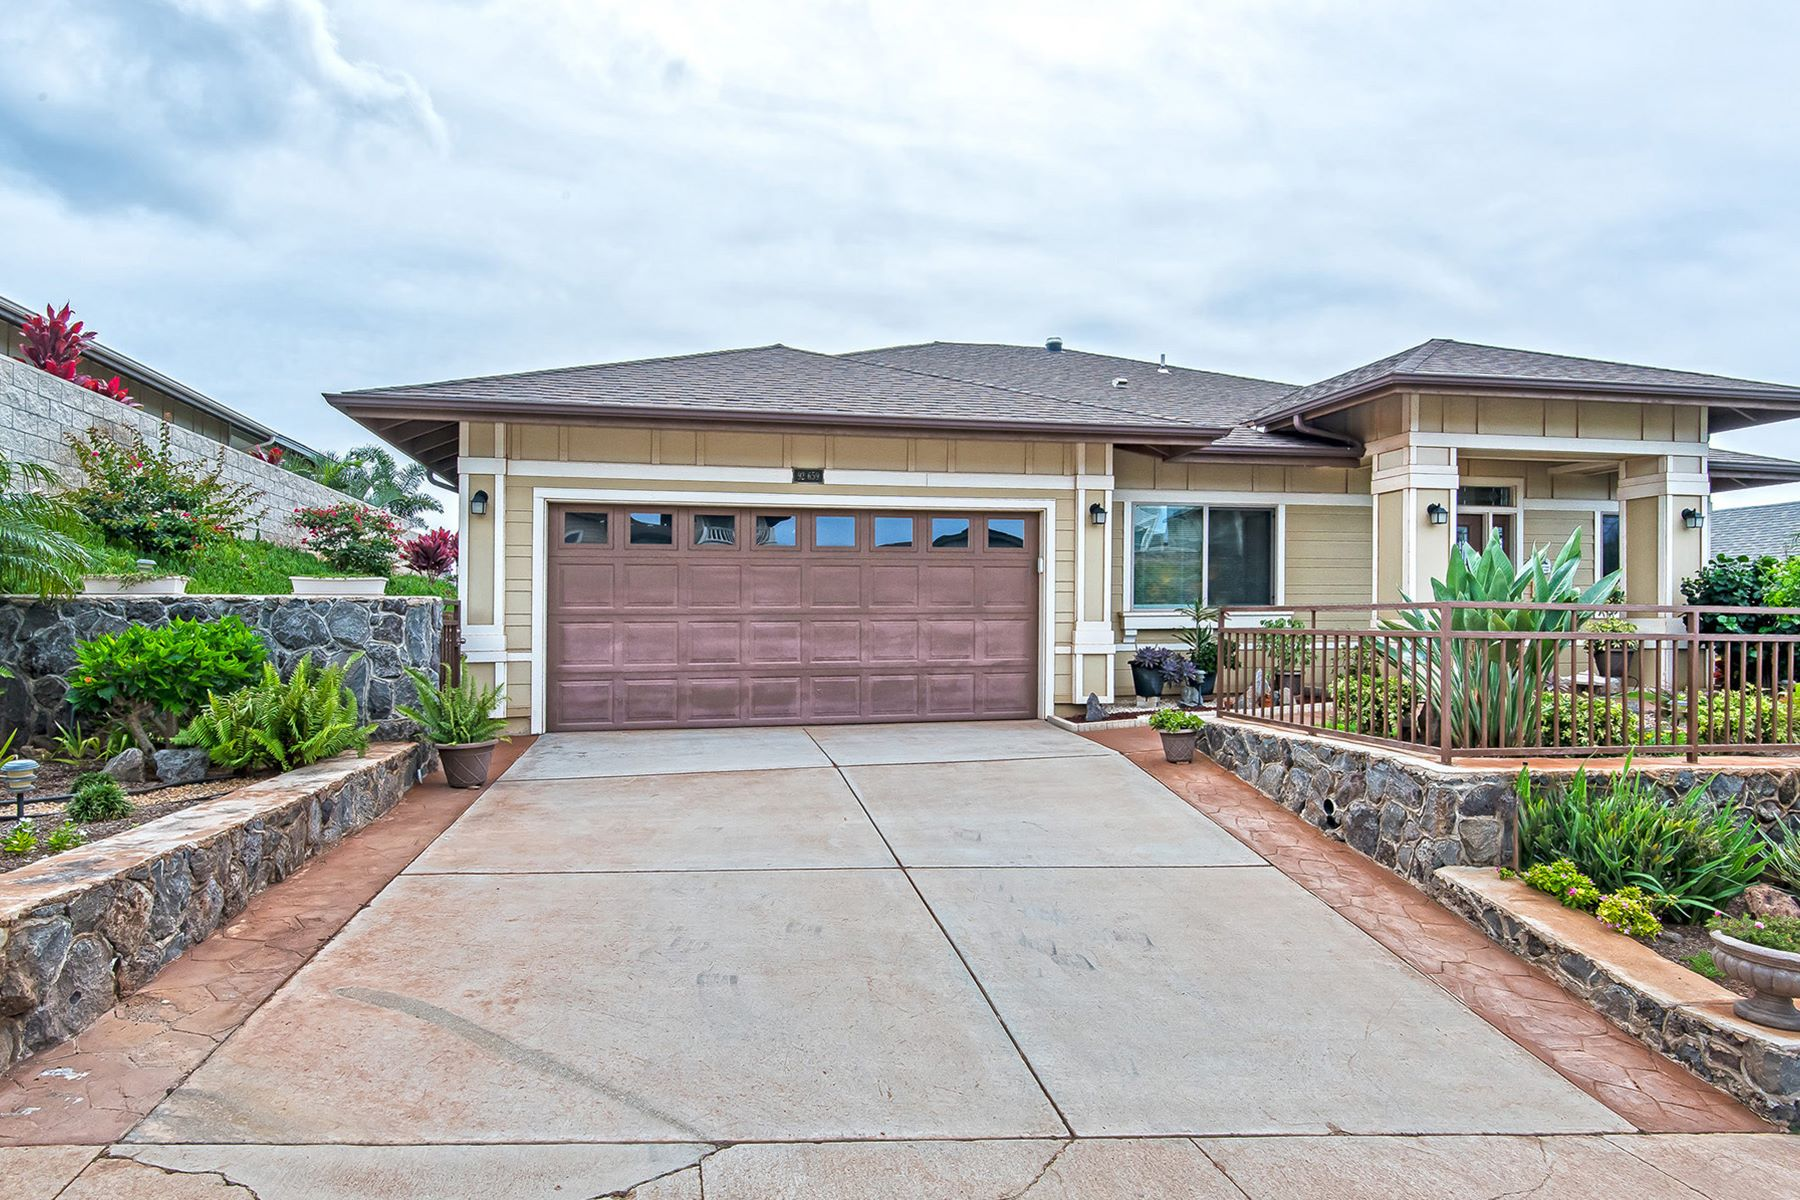 Single Family Home for Sale at Oasis in Makakilo 92-659 Welo St Kapolei, Hawaii 96707 United States